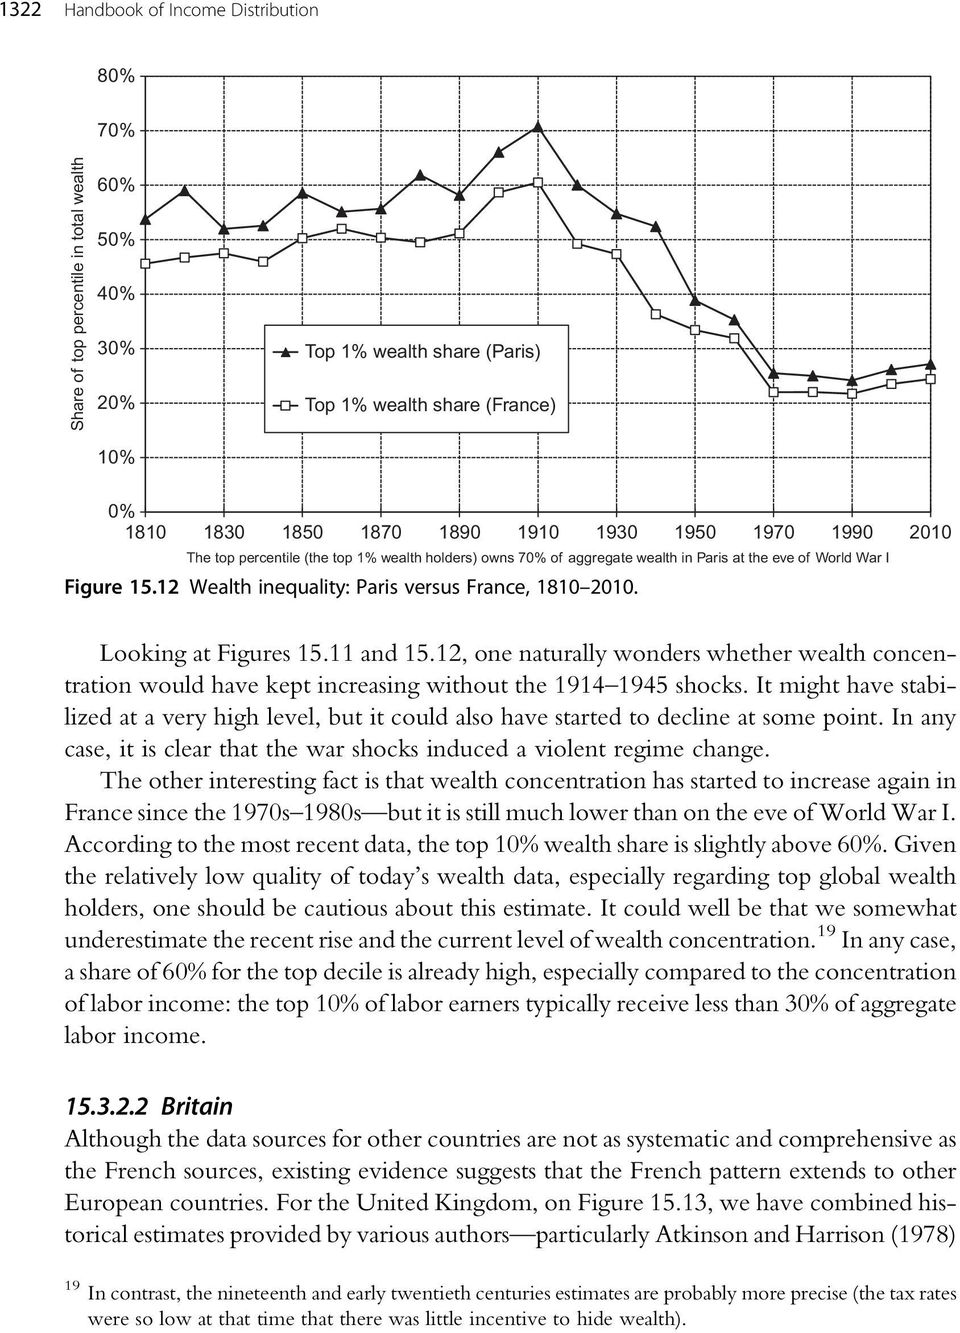 Looking at Figures 15.11 and 15.12, one naturally wonders whether wealth concentration would have kept increasing without the 1914 1945 shocks.